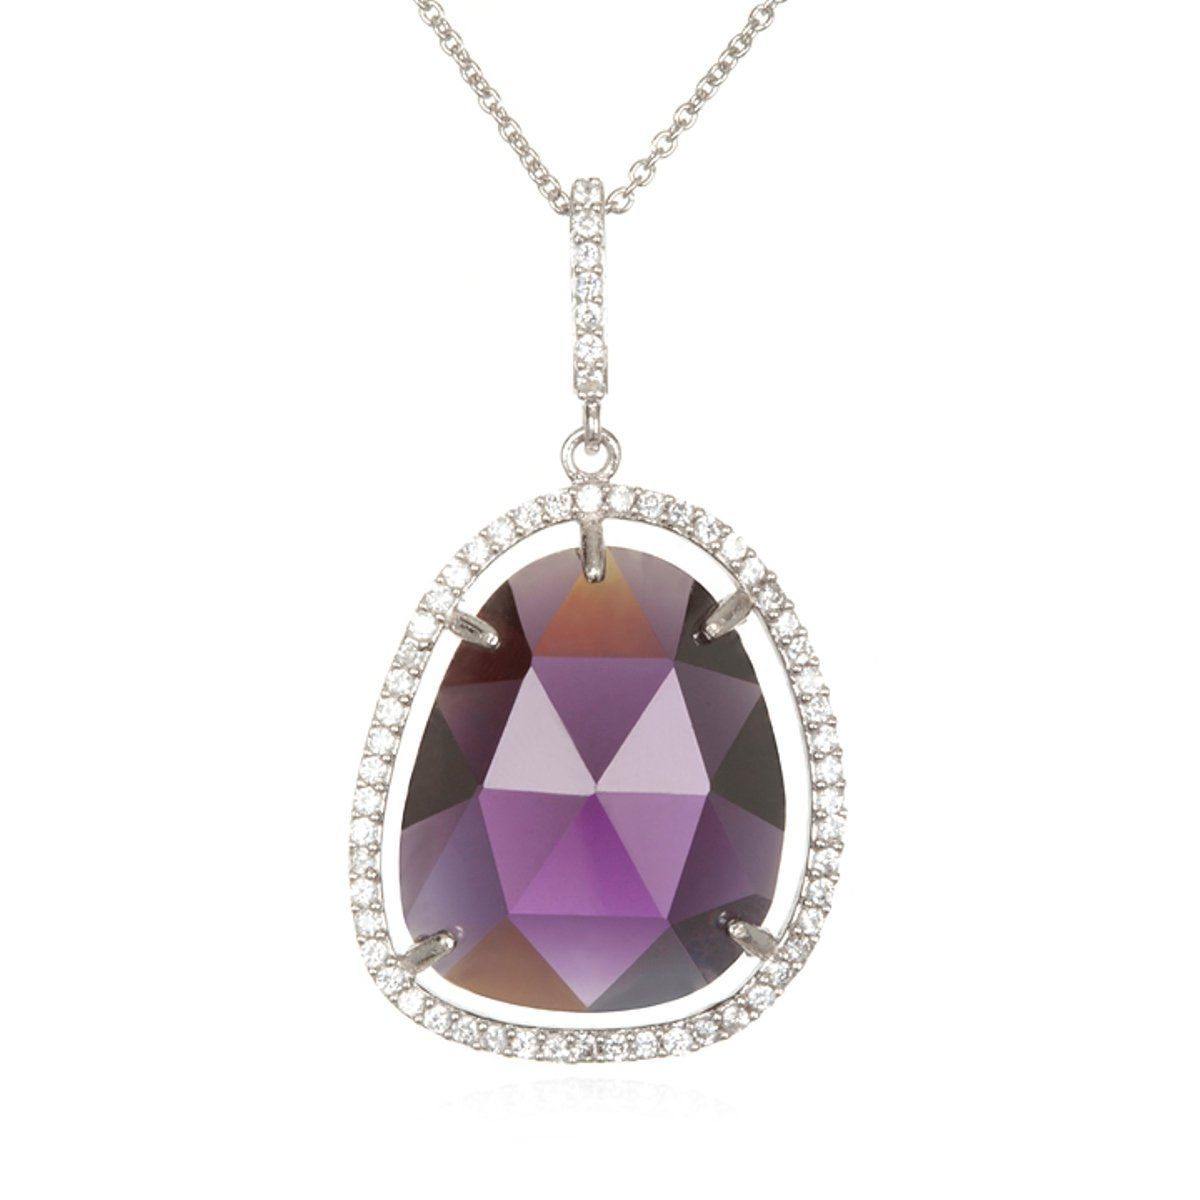 """Rhodium Plate Silver Asymmetrical Shape Pendant with Purple Cz-18"""". Free Super Saver Shipping On All U.S Orders!. Top Rated Seller - 100% Satisfaction Guarantee - Fast Shipping - Easy Returns. Cheline has Been Designing Jewelry for 25 Years. Ships in a Gift Box with Its Own Pretty Jewelry Pouch. Mark .925 Sterling Silver."""